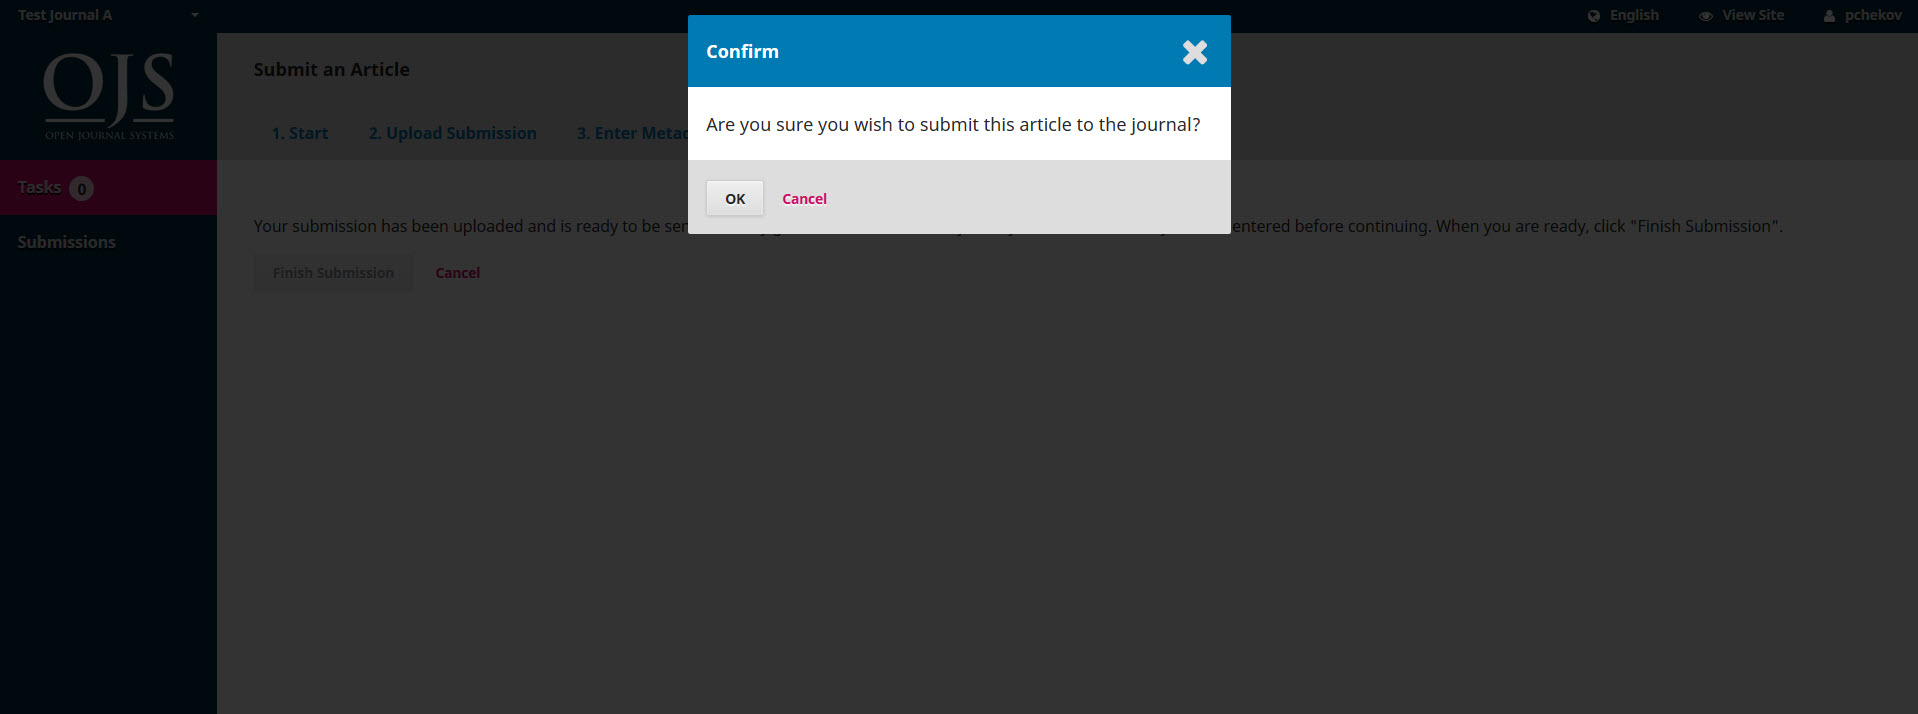 ojs3-author-submission-step4-confirm